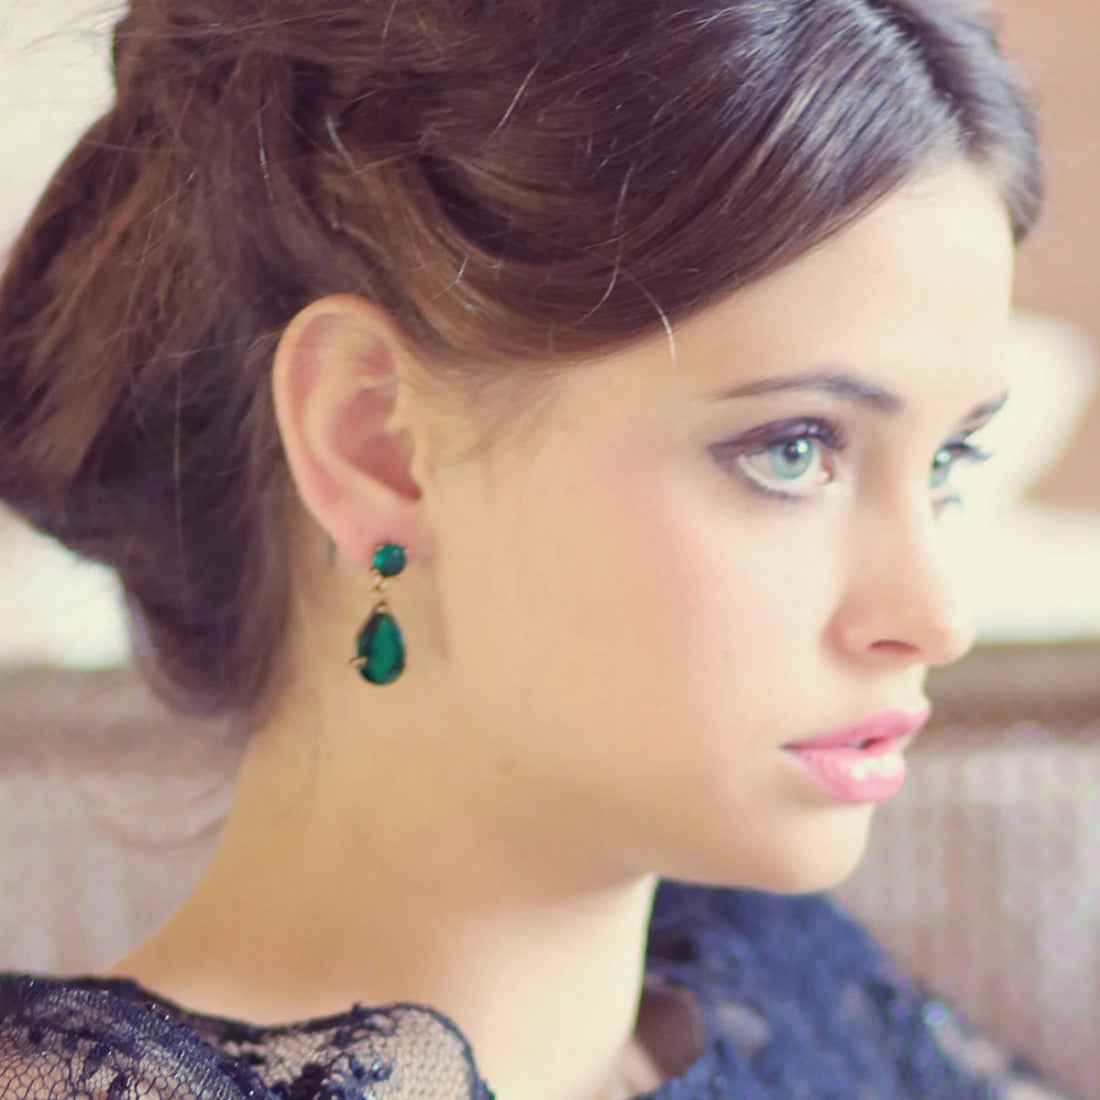 Model wears Emerald Enigma Drop Fashion Earrings